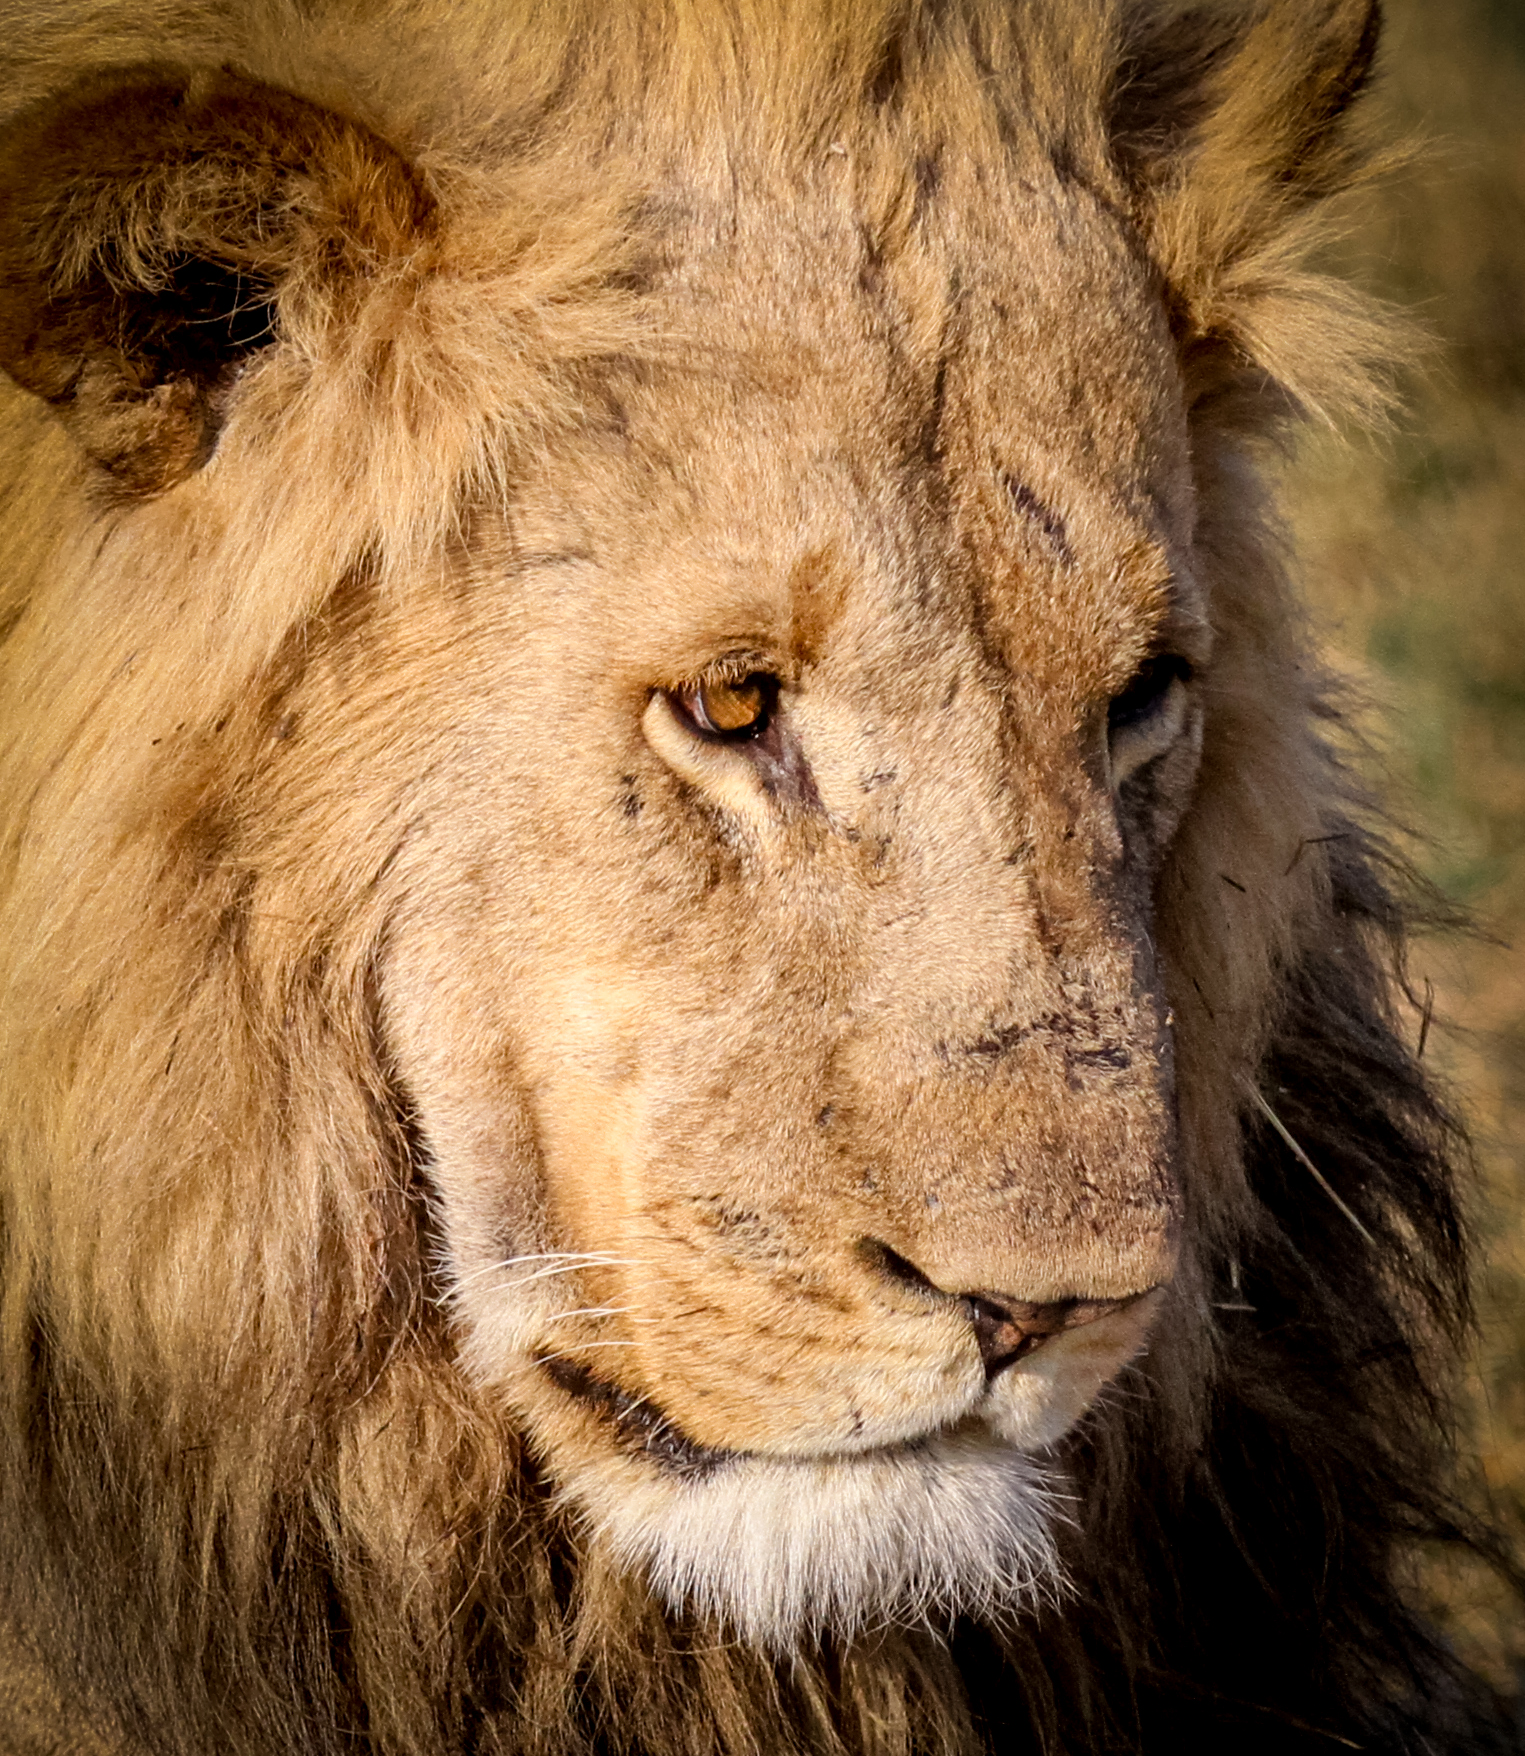 Sad looking adult male lion. Khwai Concessions, Okavango Delta, Botswana.